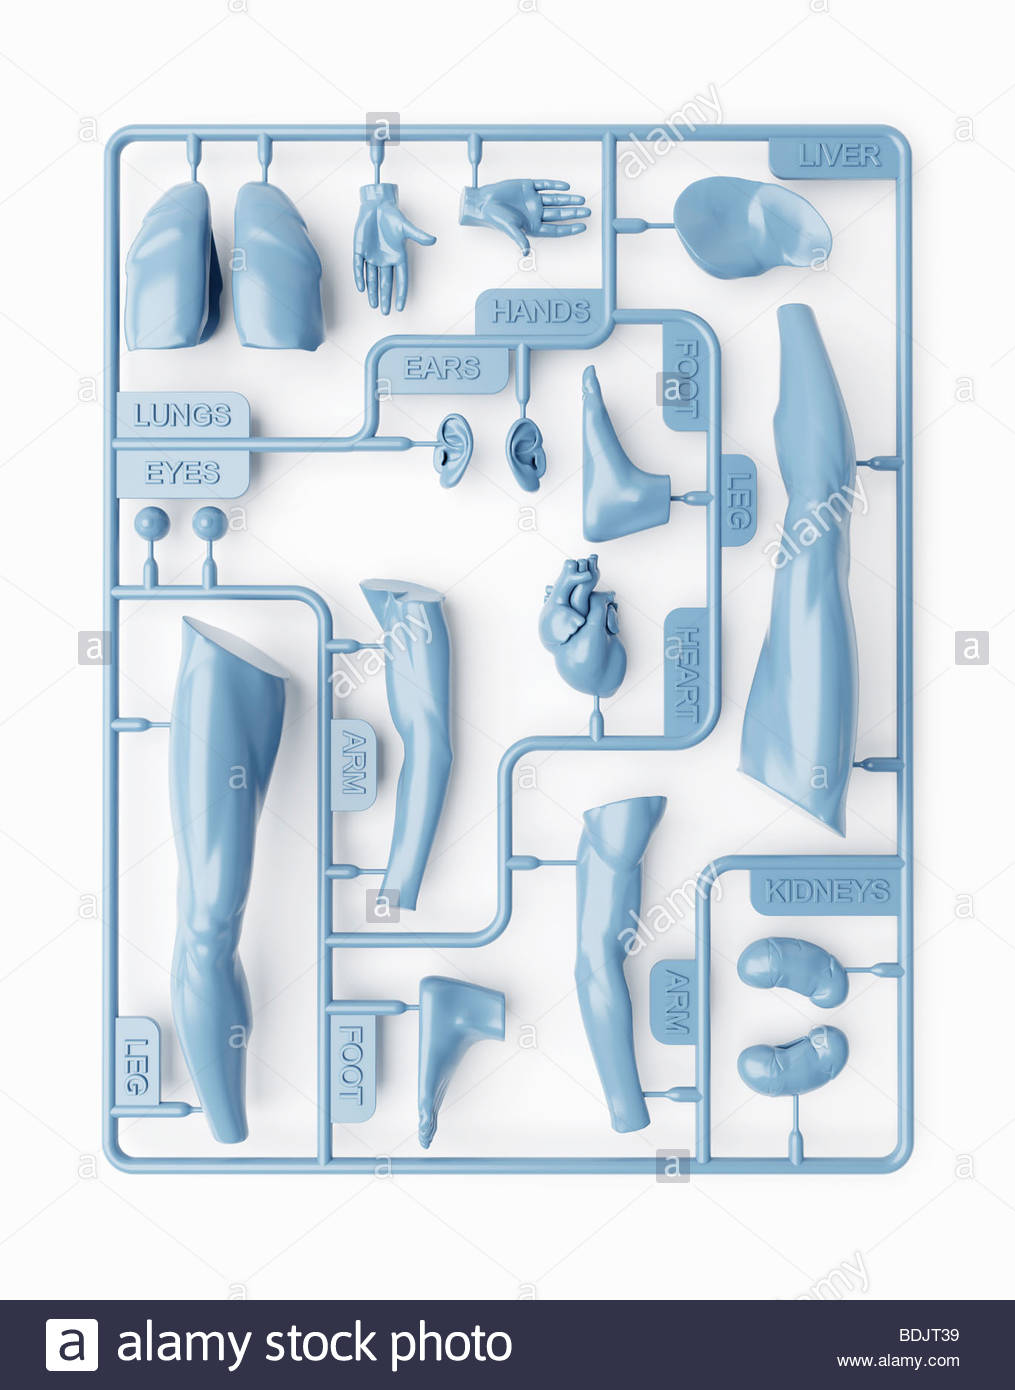 Kidney And Its Parts Stockfotos & Kidney And Its Parts Bilder - Alamy